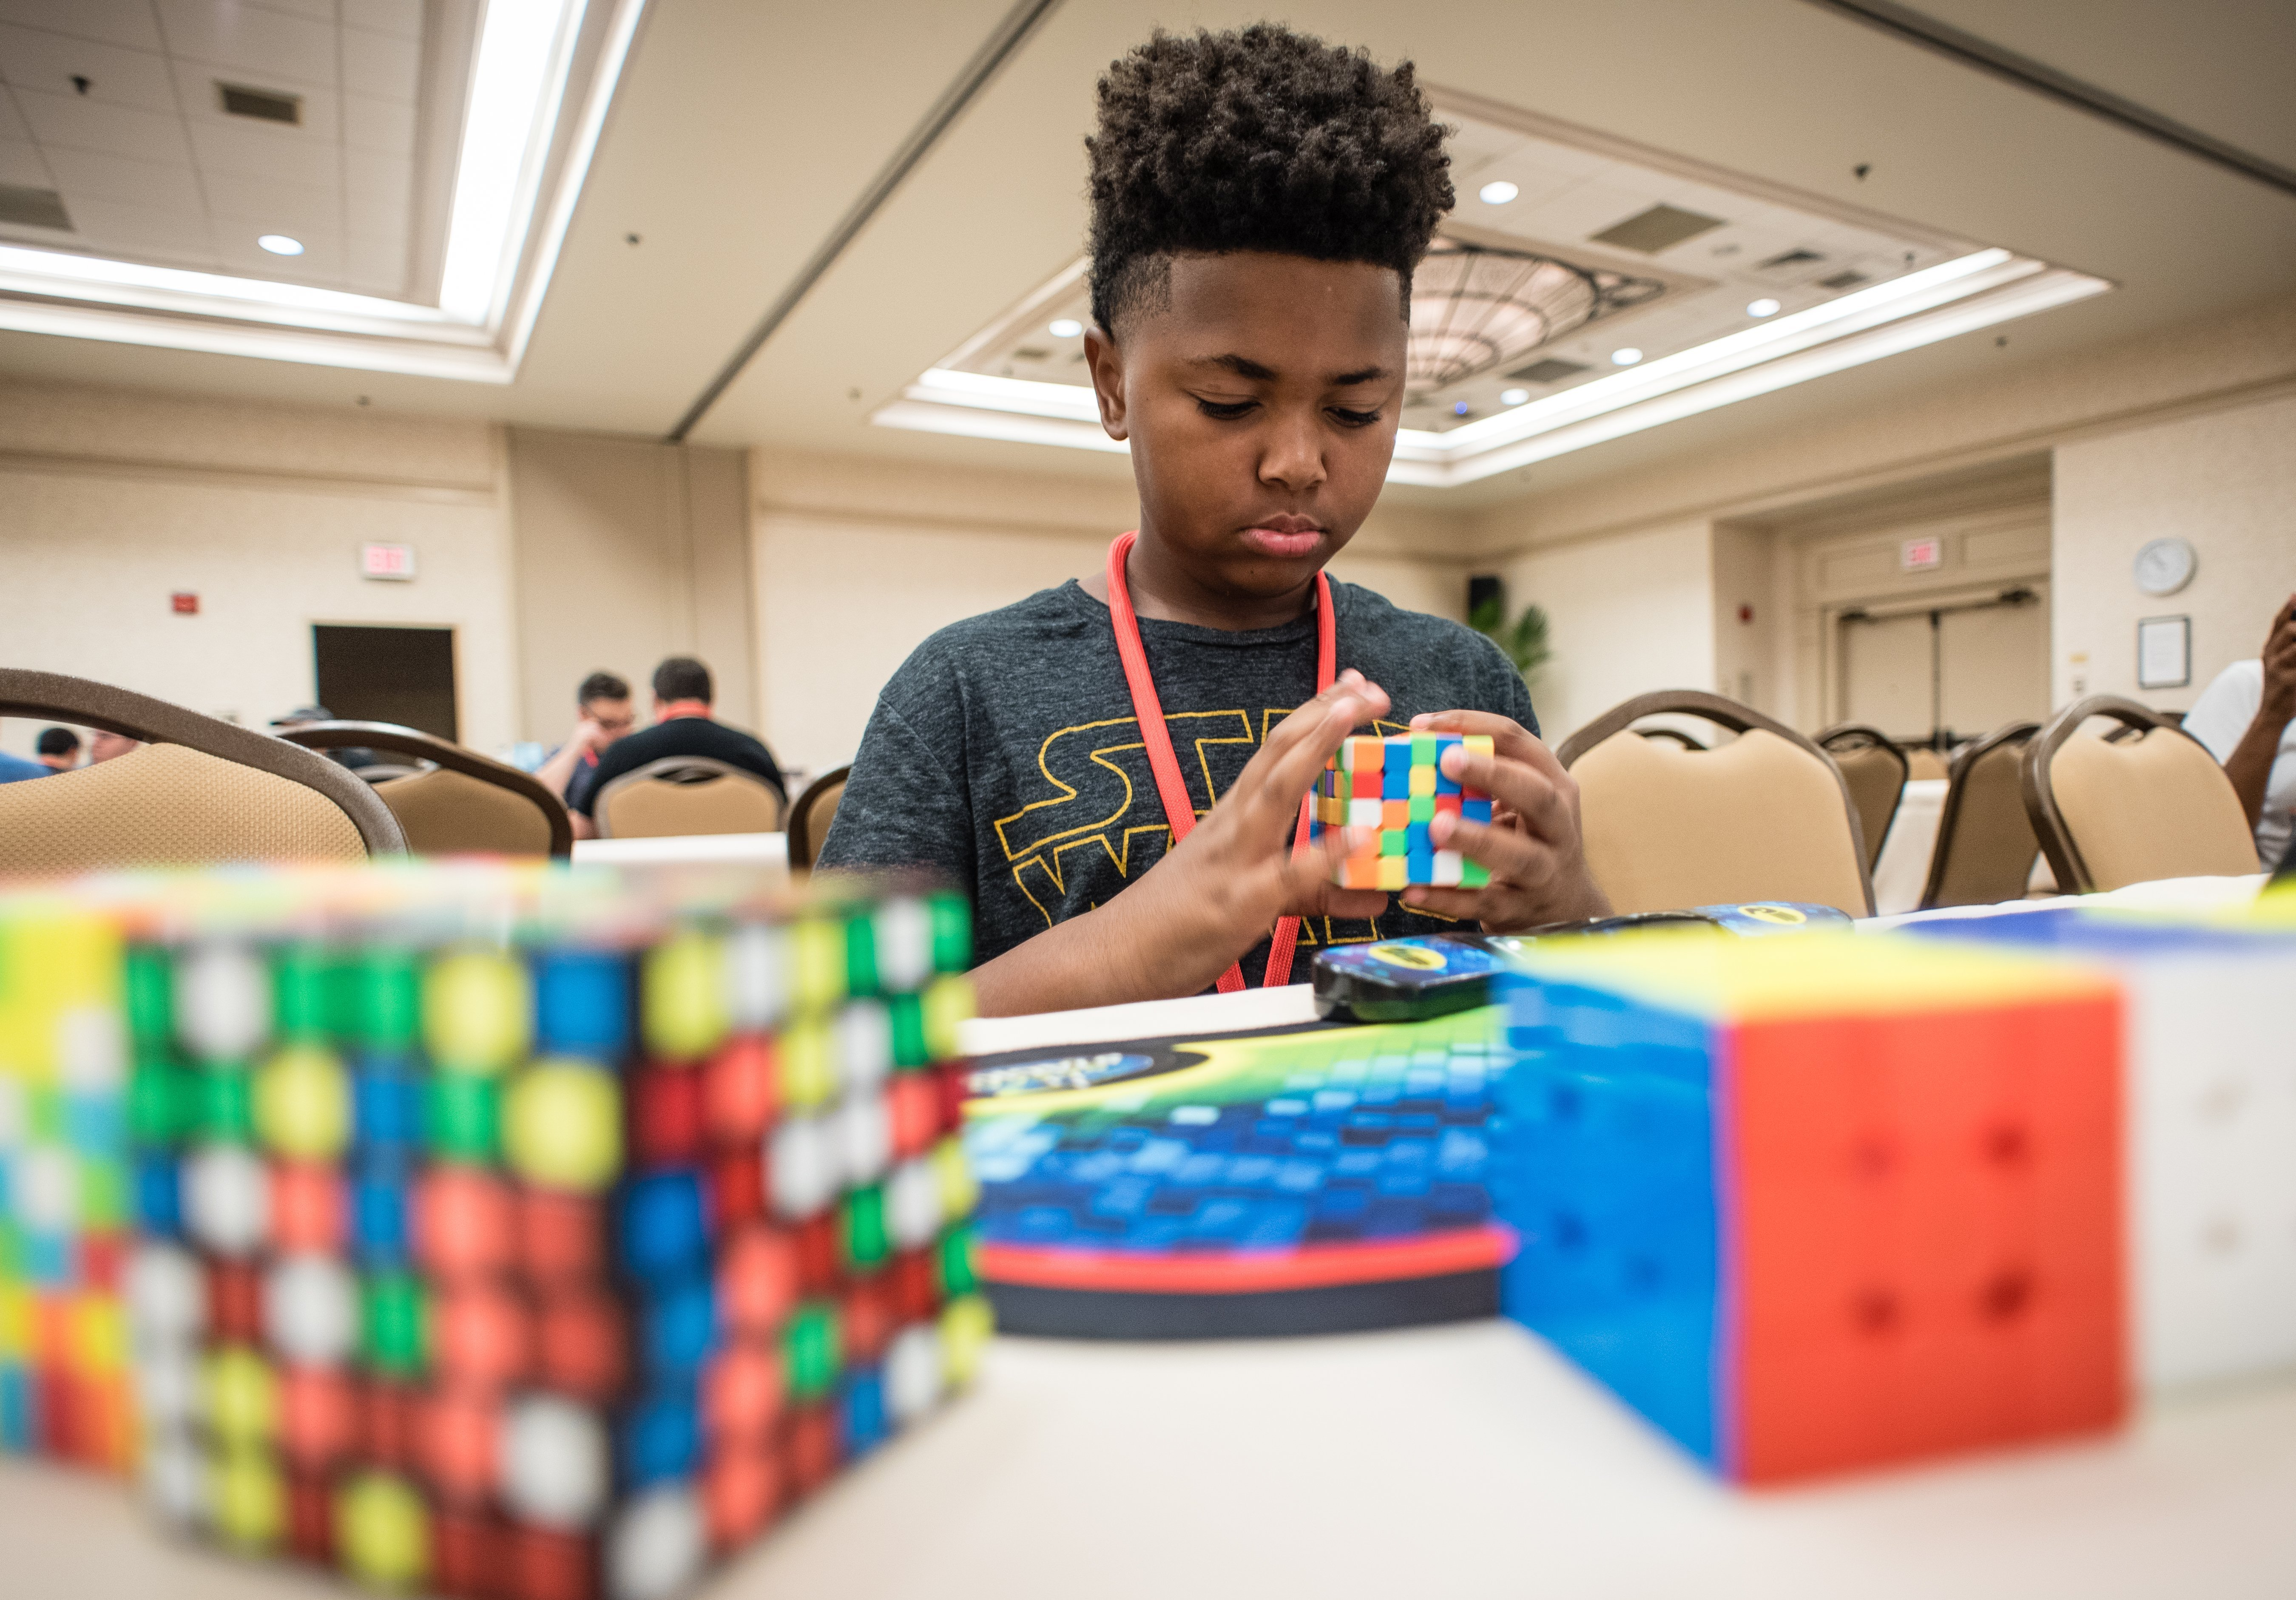 Stone Simpson, 11, from DC, came to demonstrate and teach people how to solve Rubik's Cubes and other twisty puzzles.|Photo: Getty Images